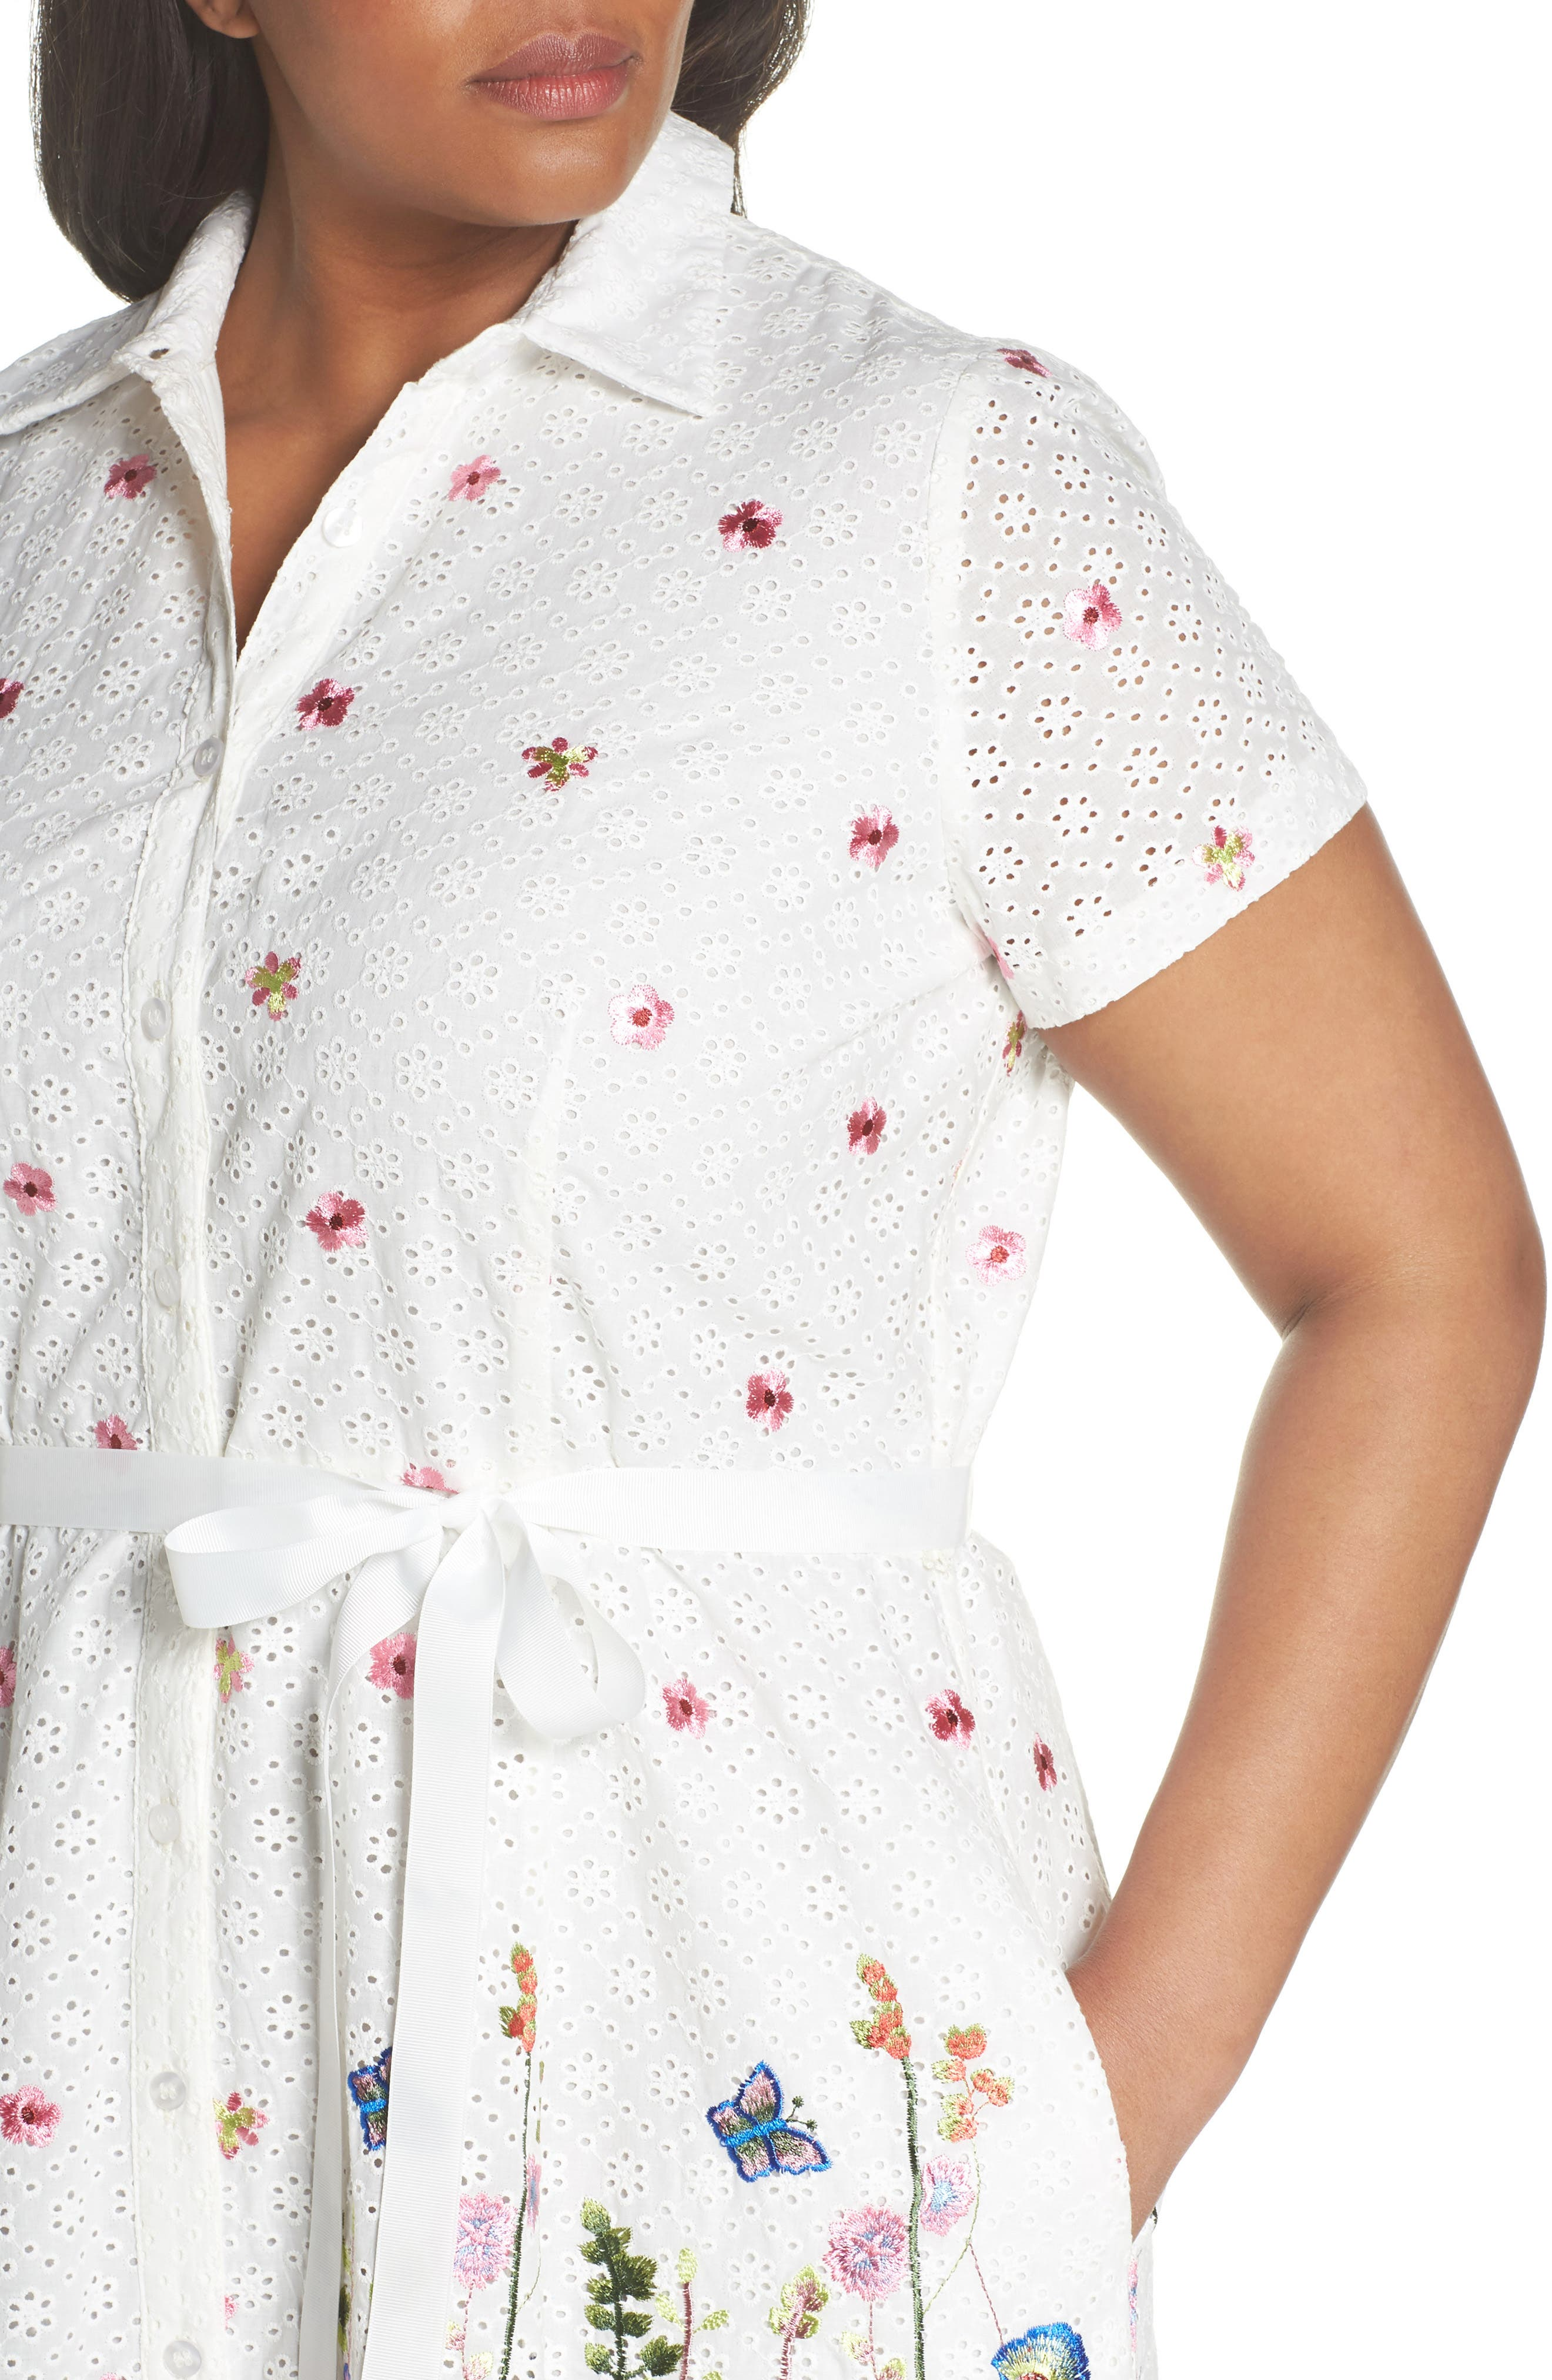 Floral Embroidered Eyelet Shirtdress,                             Alternate thumbnail 4, color,                             179